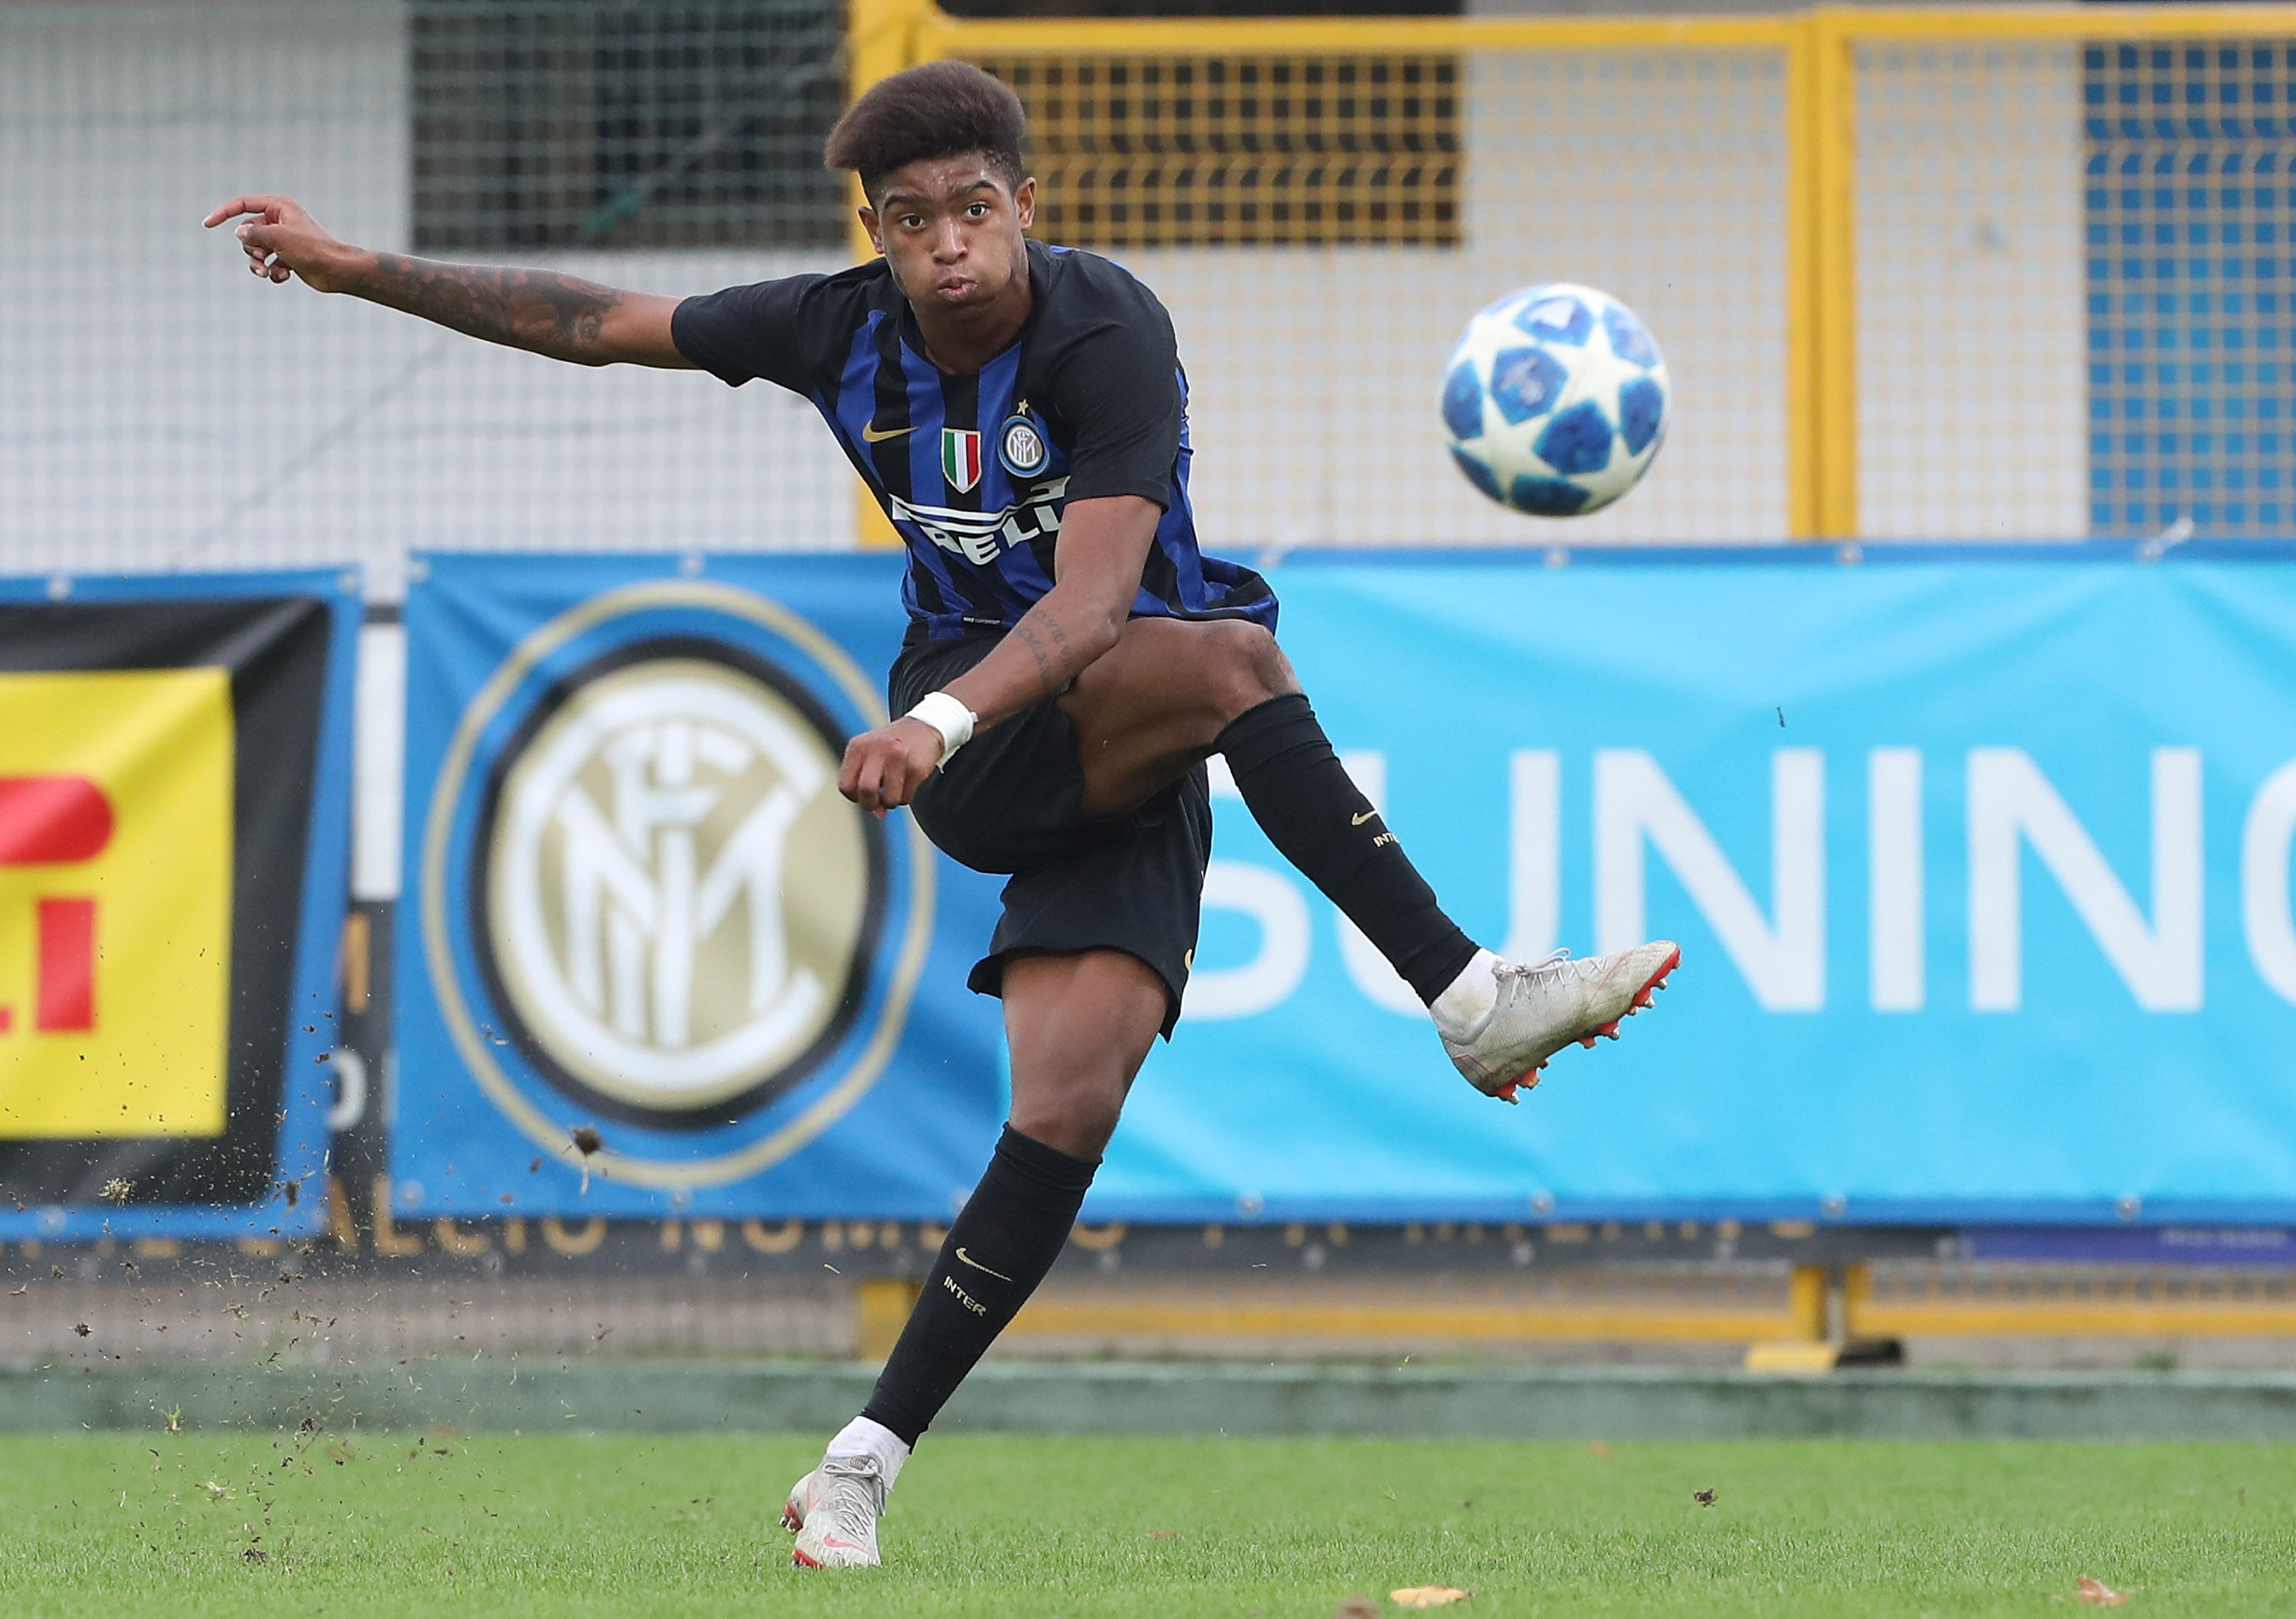 Photos from Inter vs. Barcelona on matchday 4 of the 18-19 UEFA Youth League